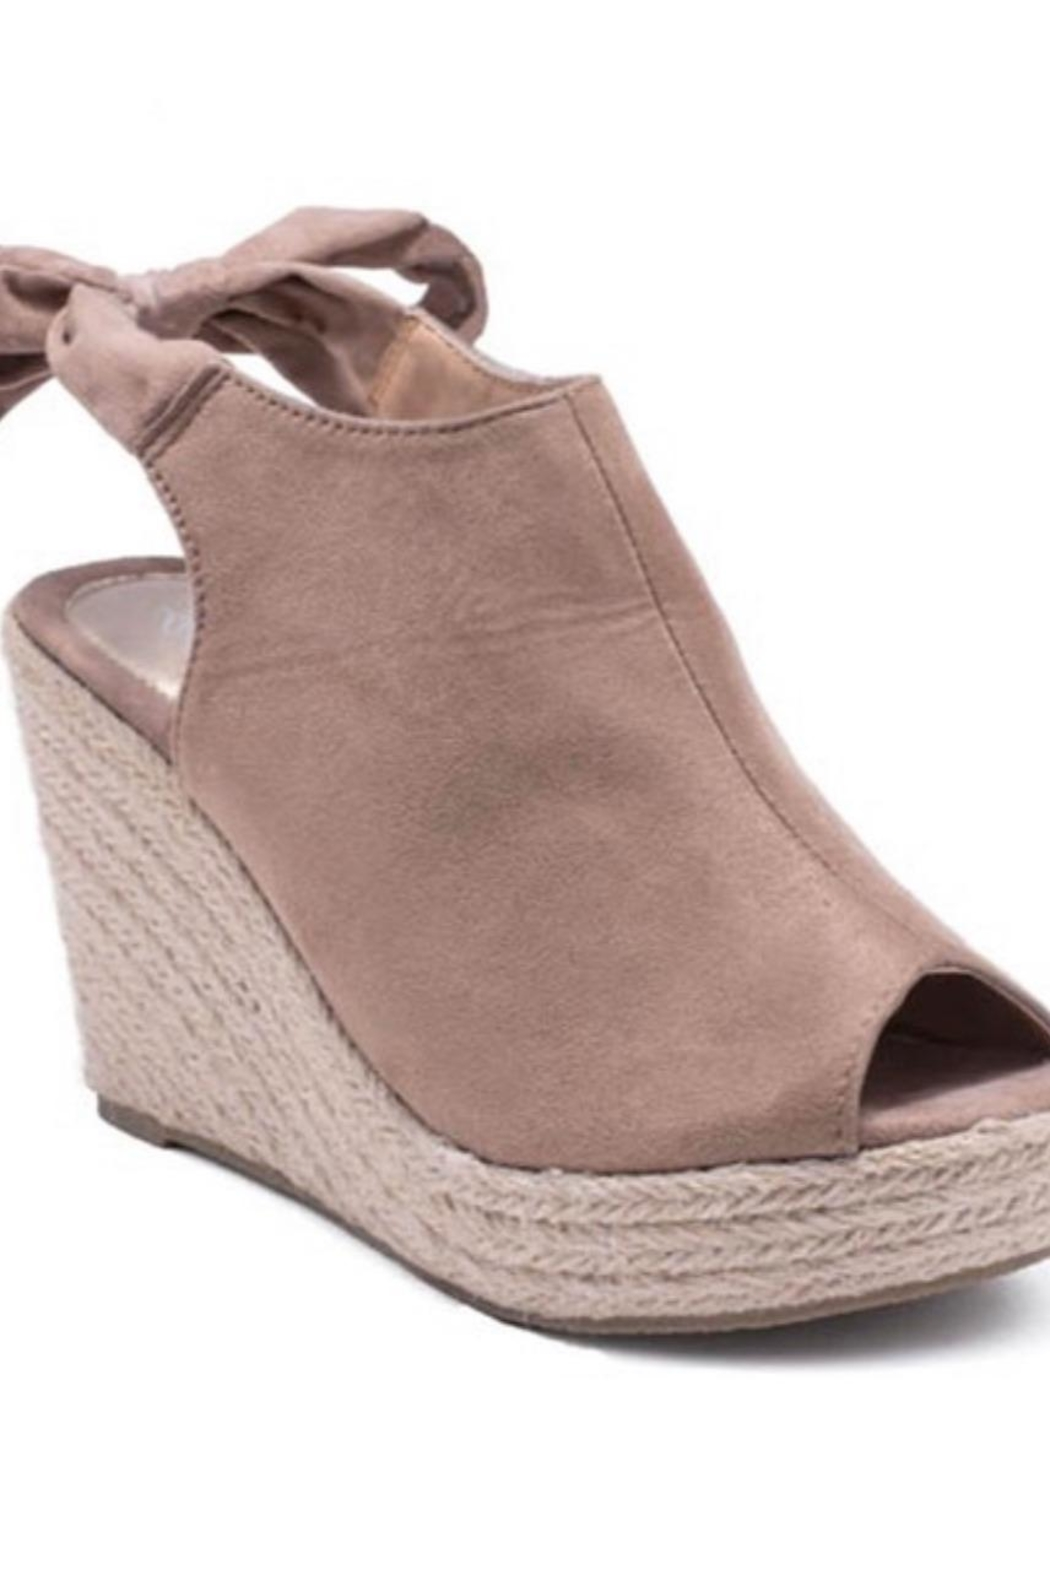 bba425488032b 3B Shoes Taupe Wedge Sandals from Wisconsin by Apricot Lane ...